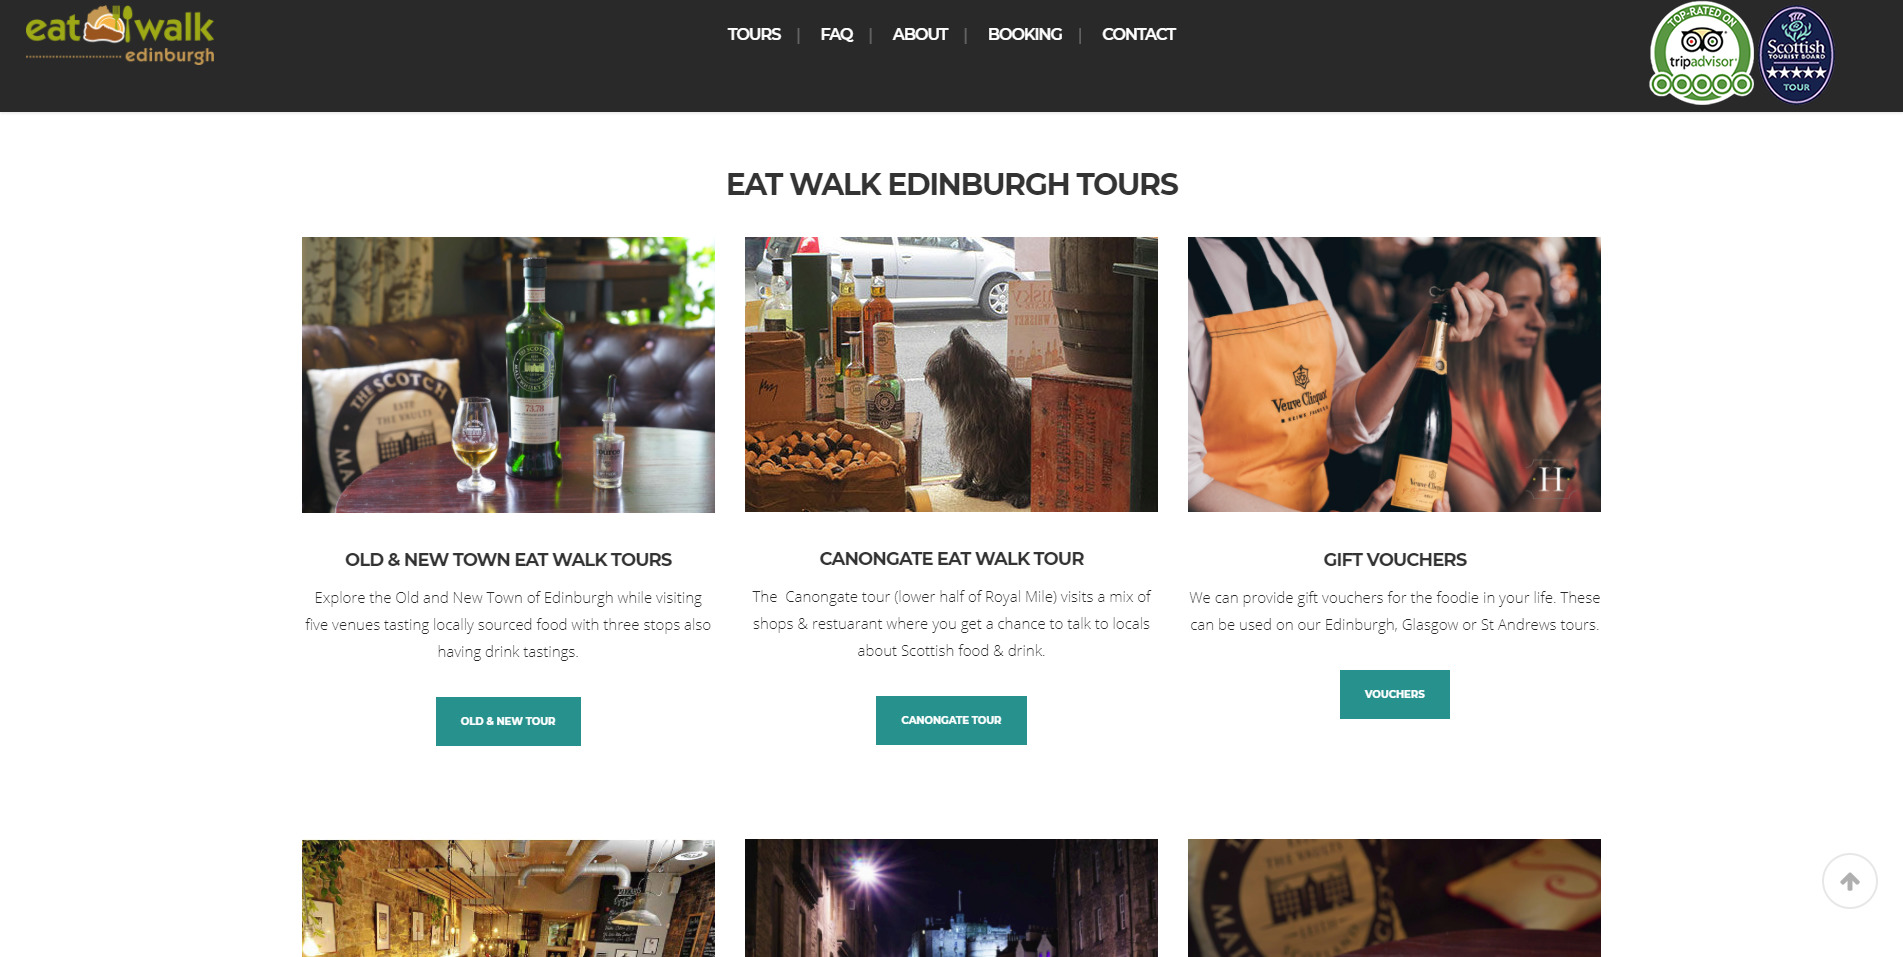 Eat-Walk-Edinburgh-Foodie-Walking-Tours-of-Scotland-s-Capital-City-1